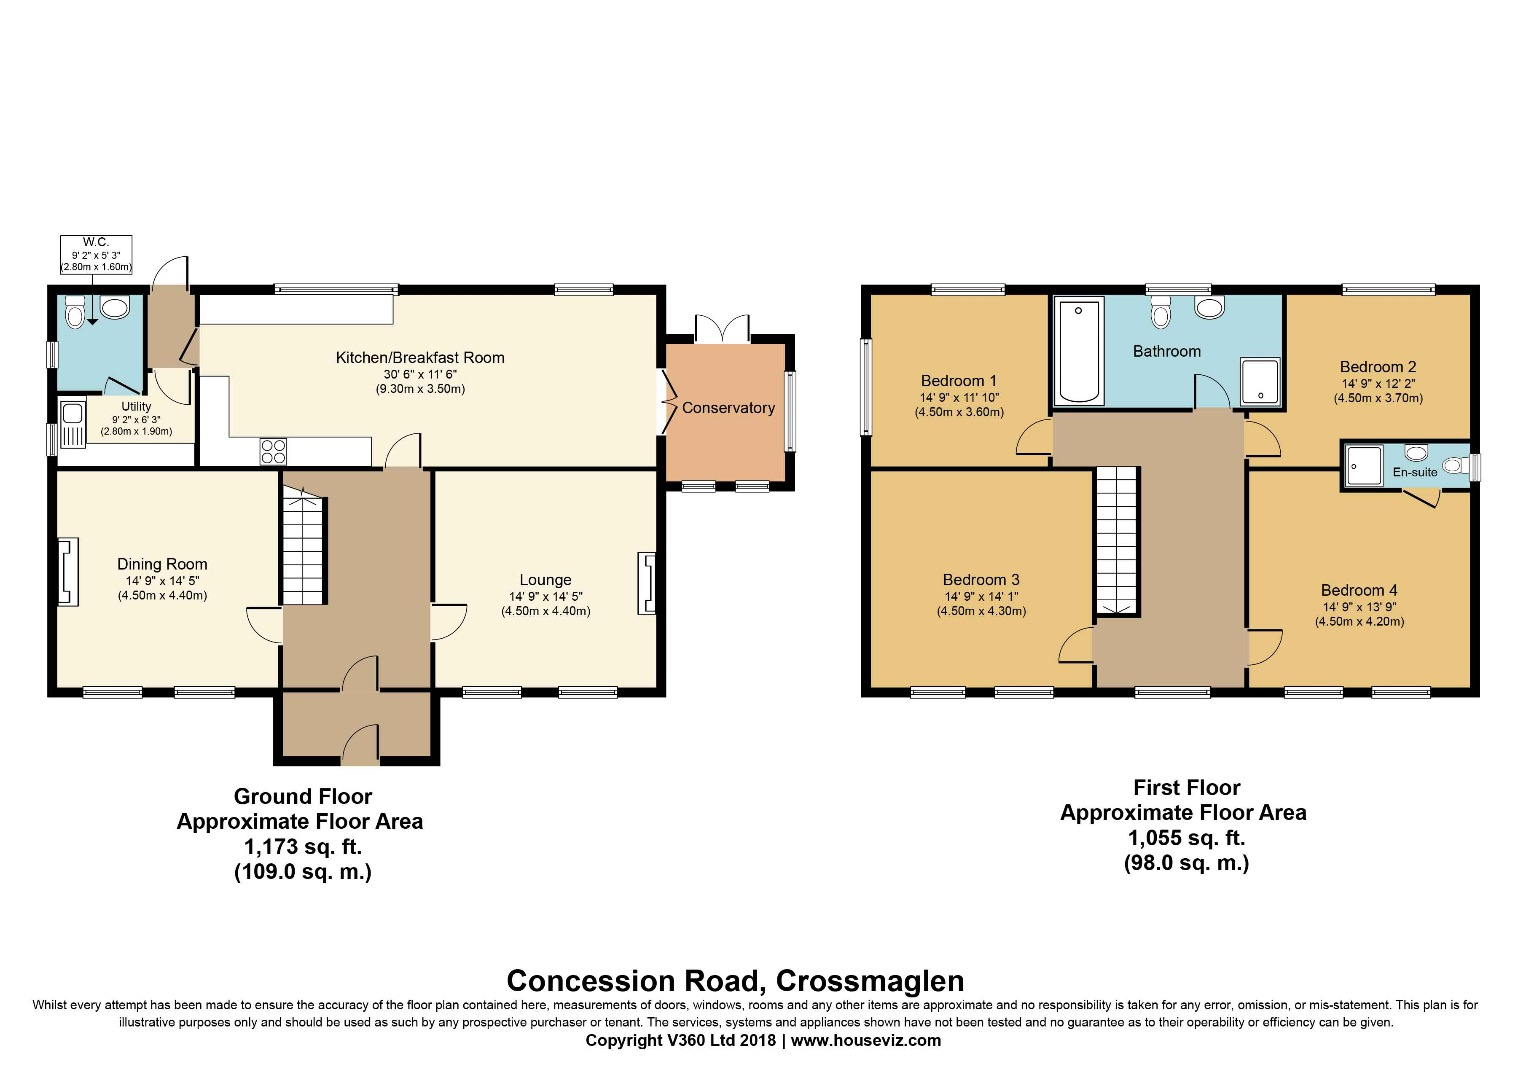 4 bed House for sale on Concession Road, Crossmaglen, Newry, Co. Down - Property Floorplan